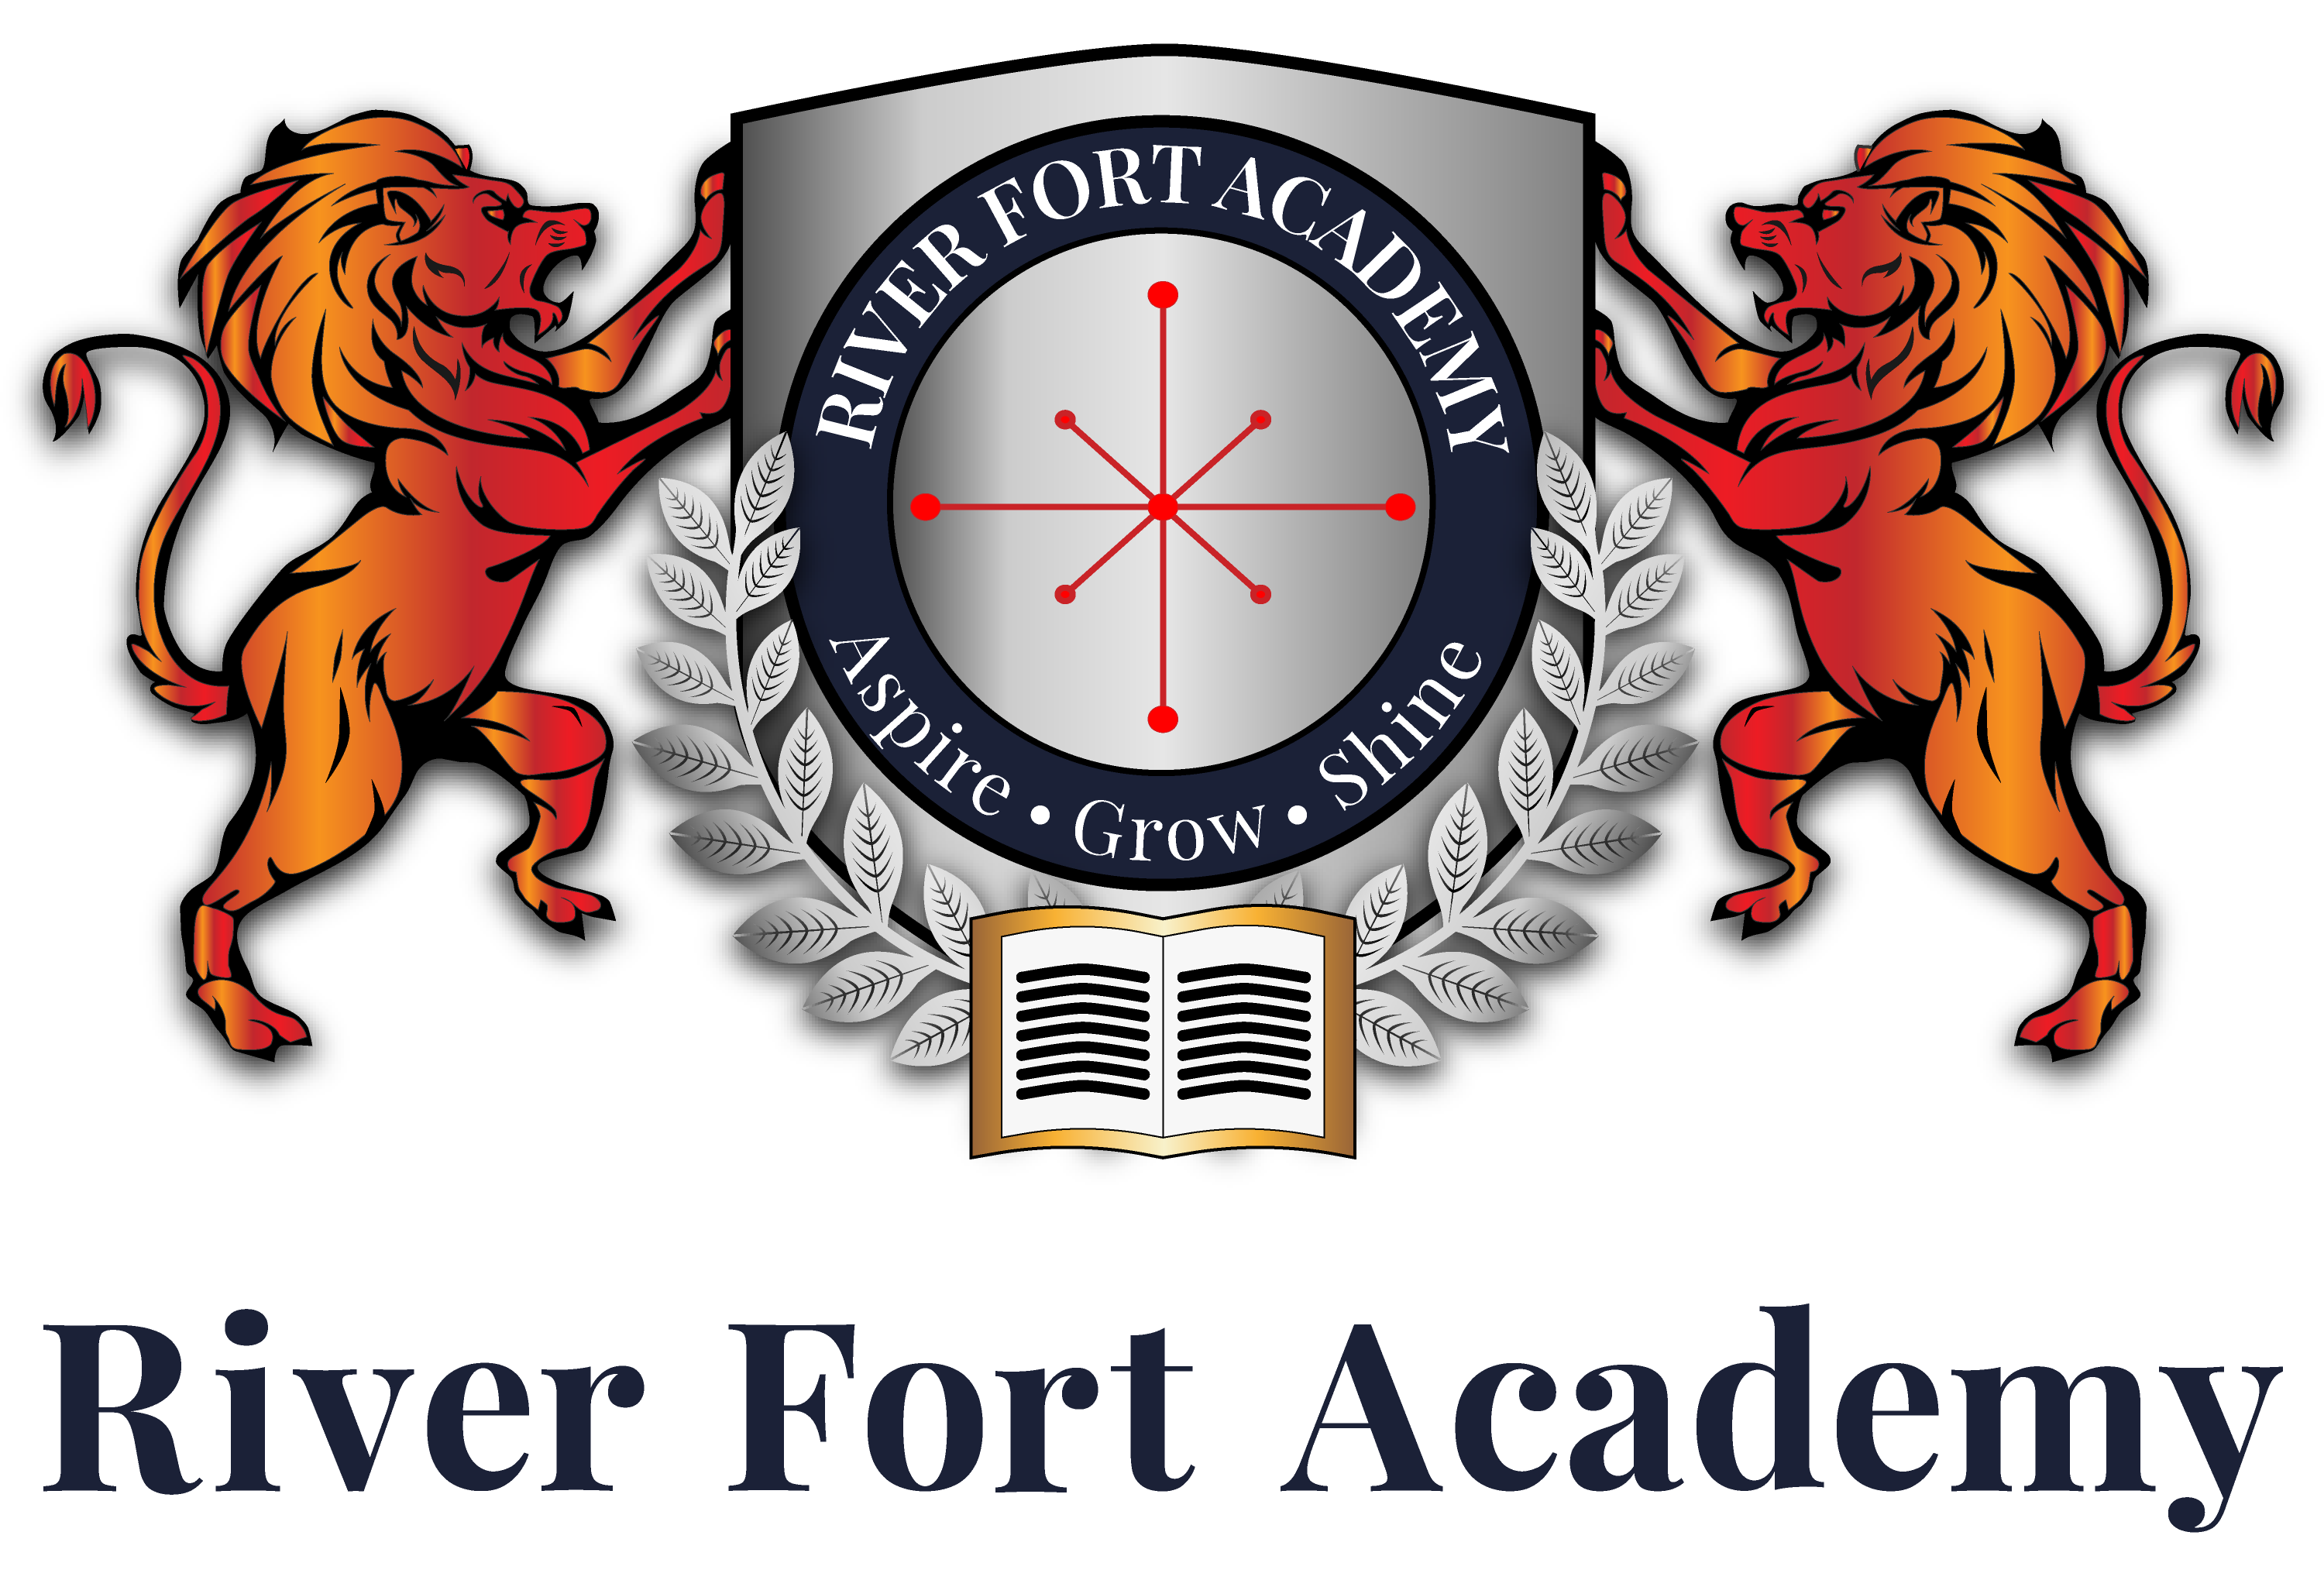 River Fort Academy